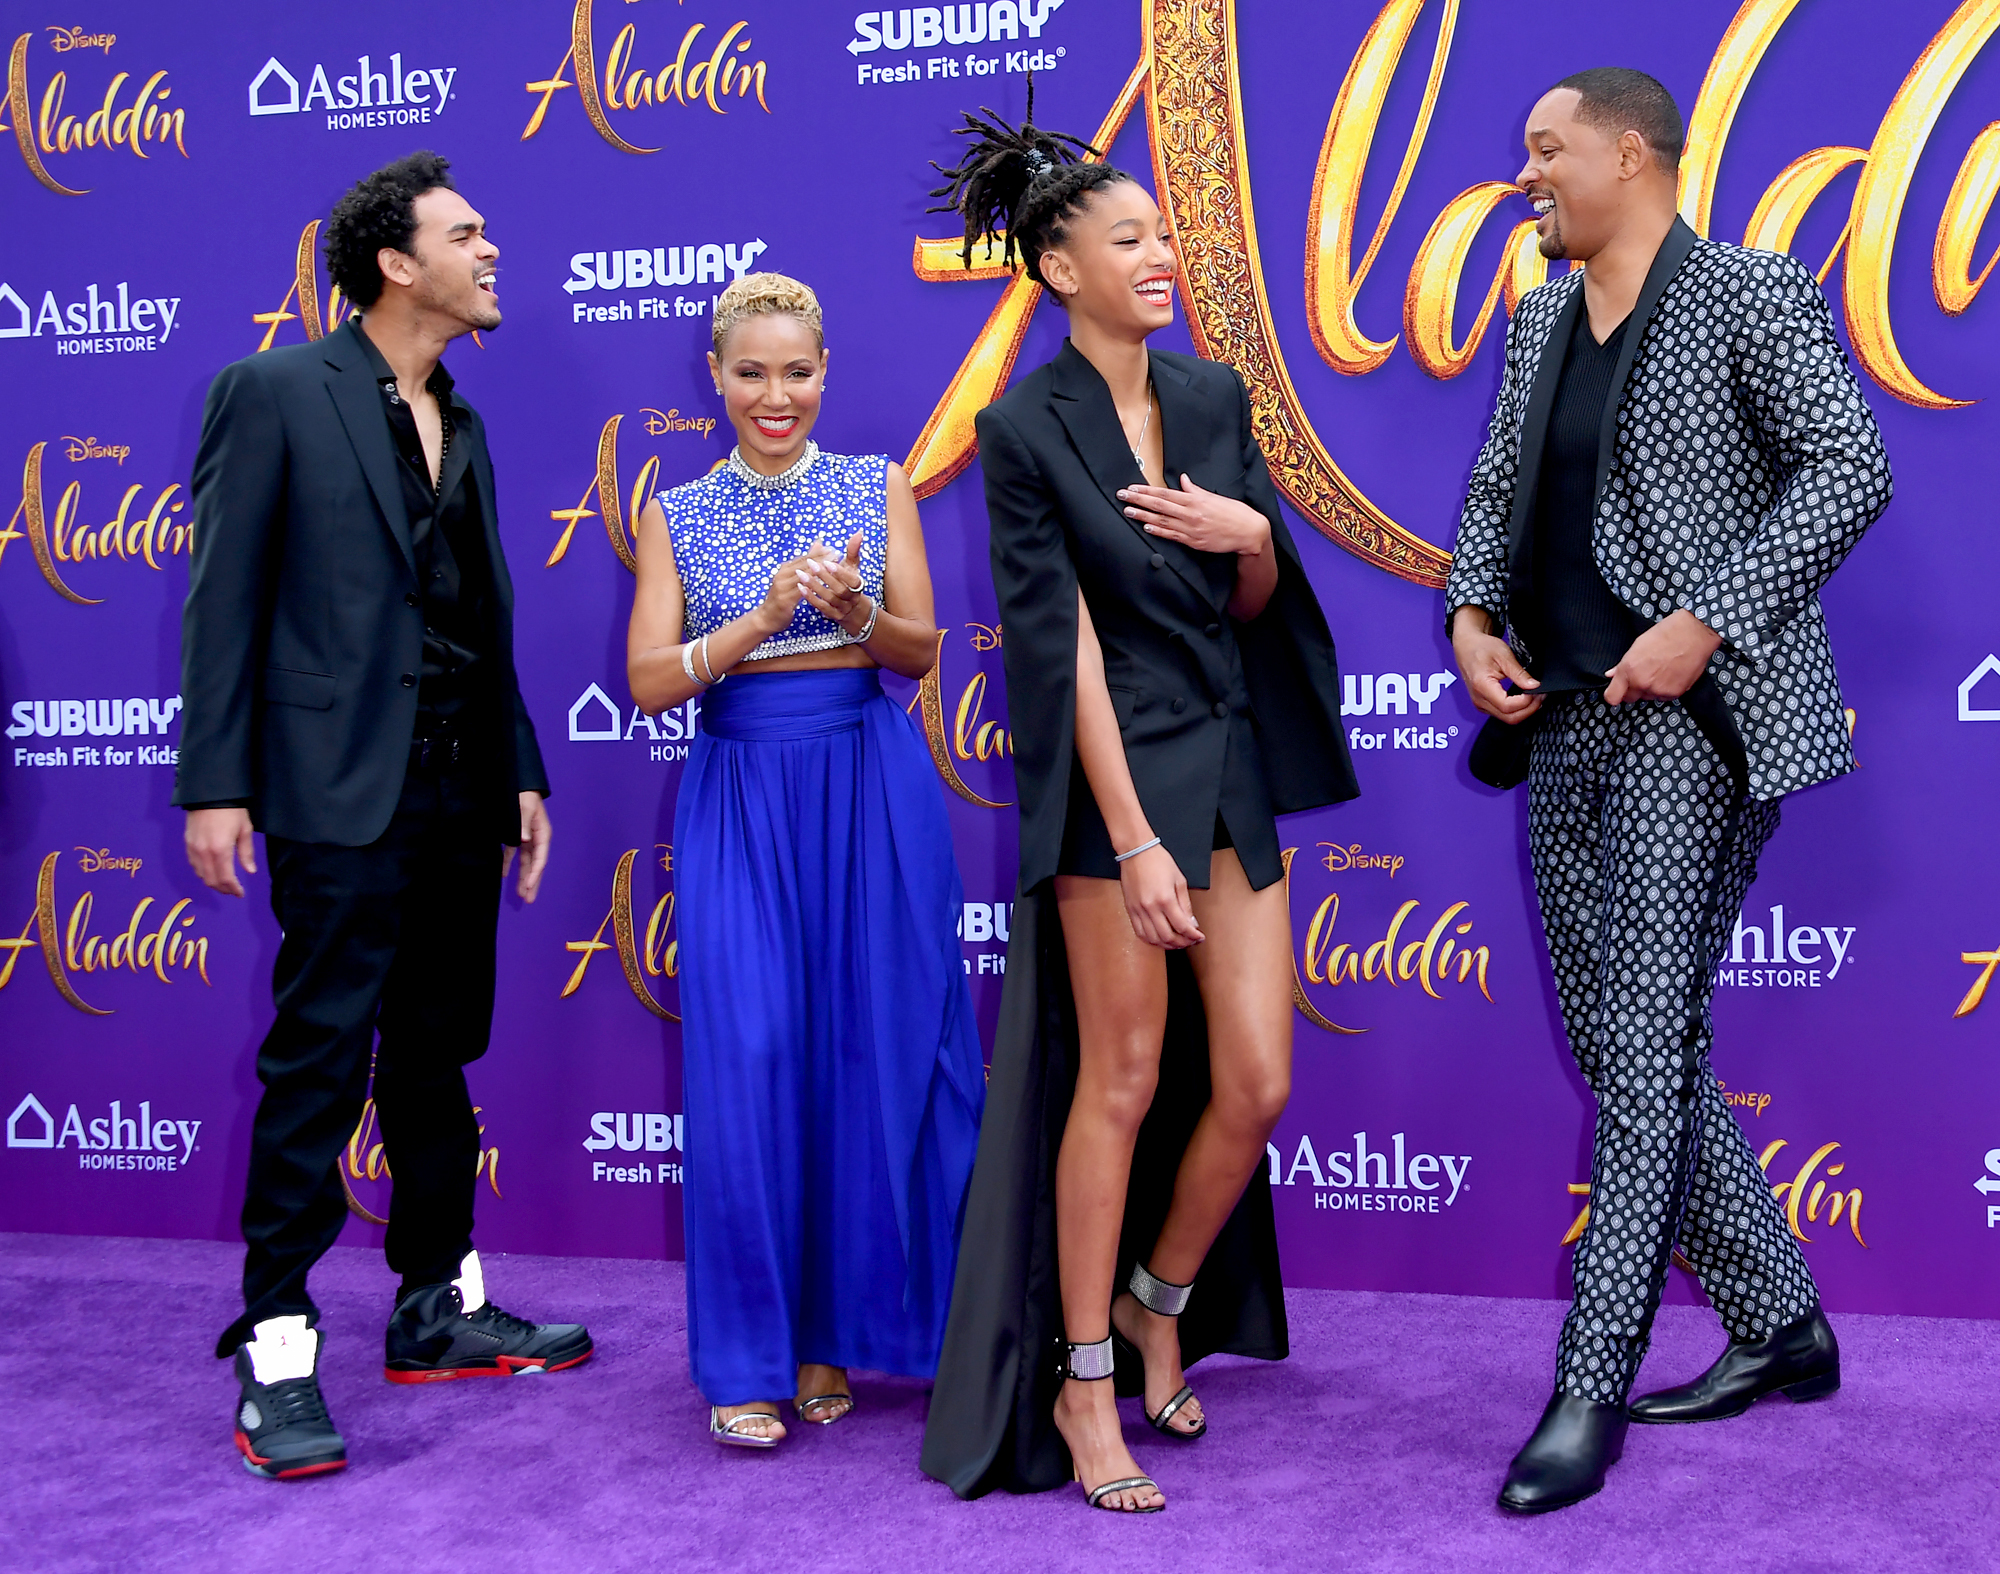 Trey-Smith,-Jada-Pinkett-Smith,-Willow-Smith-and-Will-Smith-Aladdin-premiere - The whole family couldn't hide their smiles.